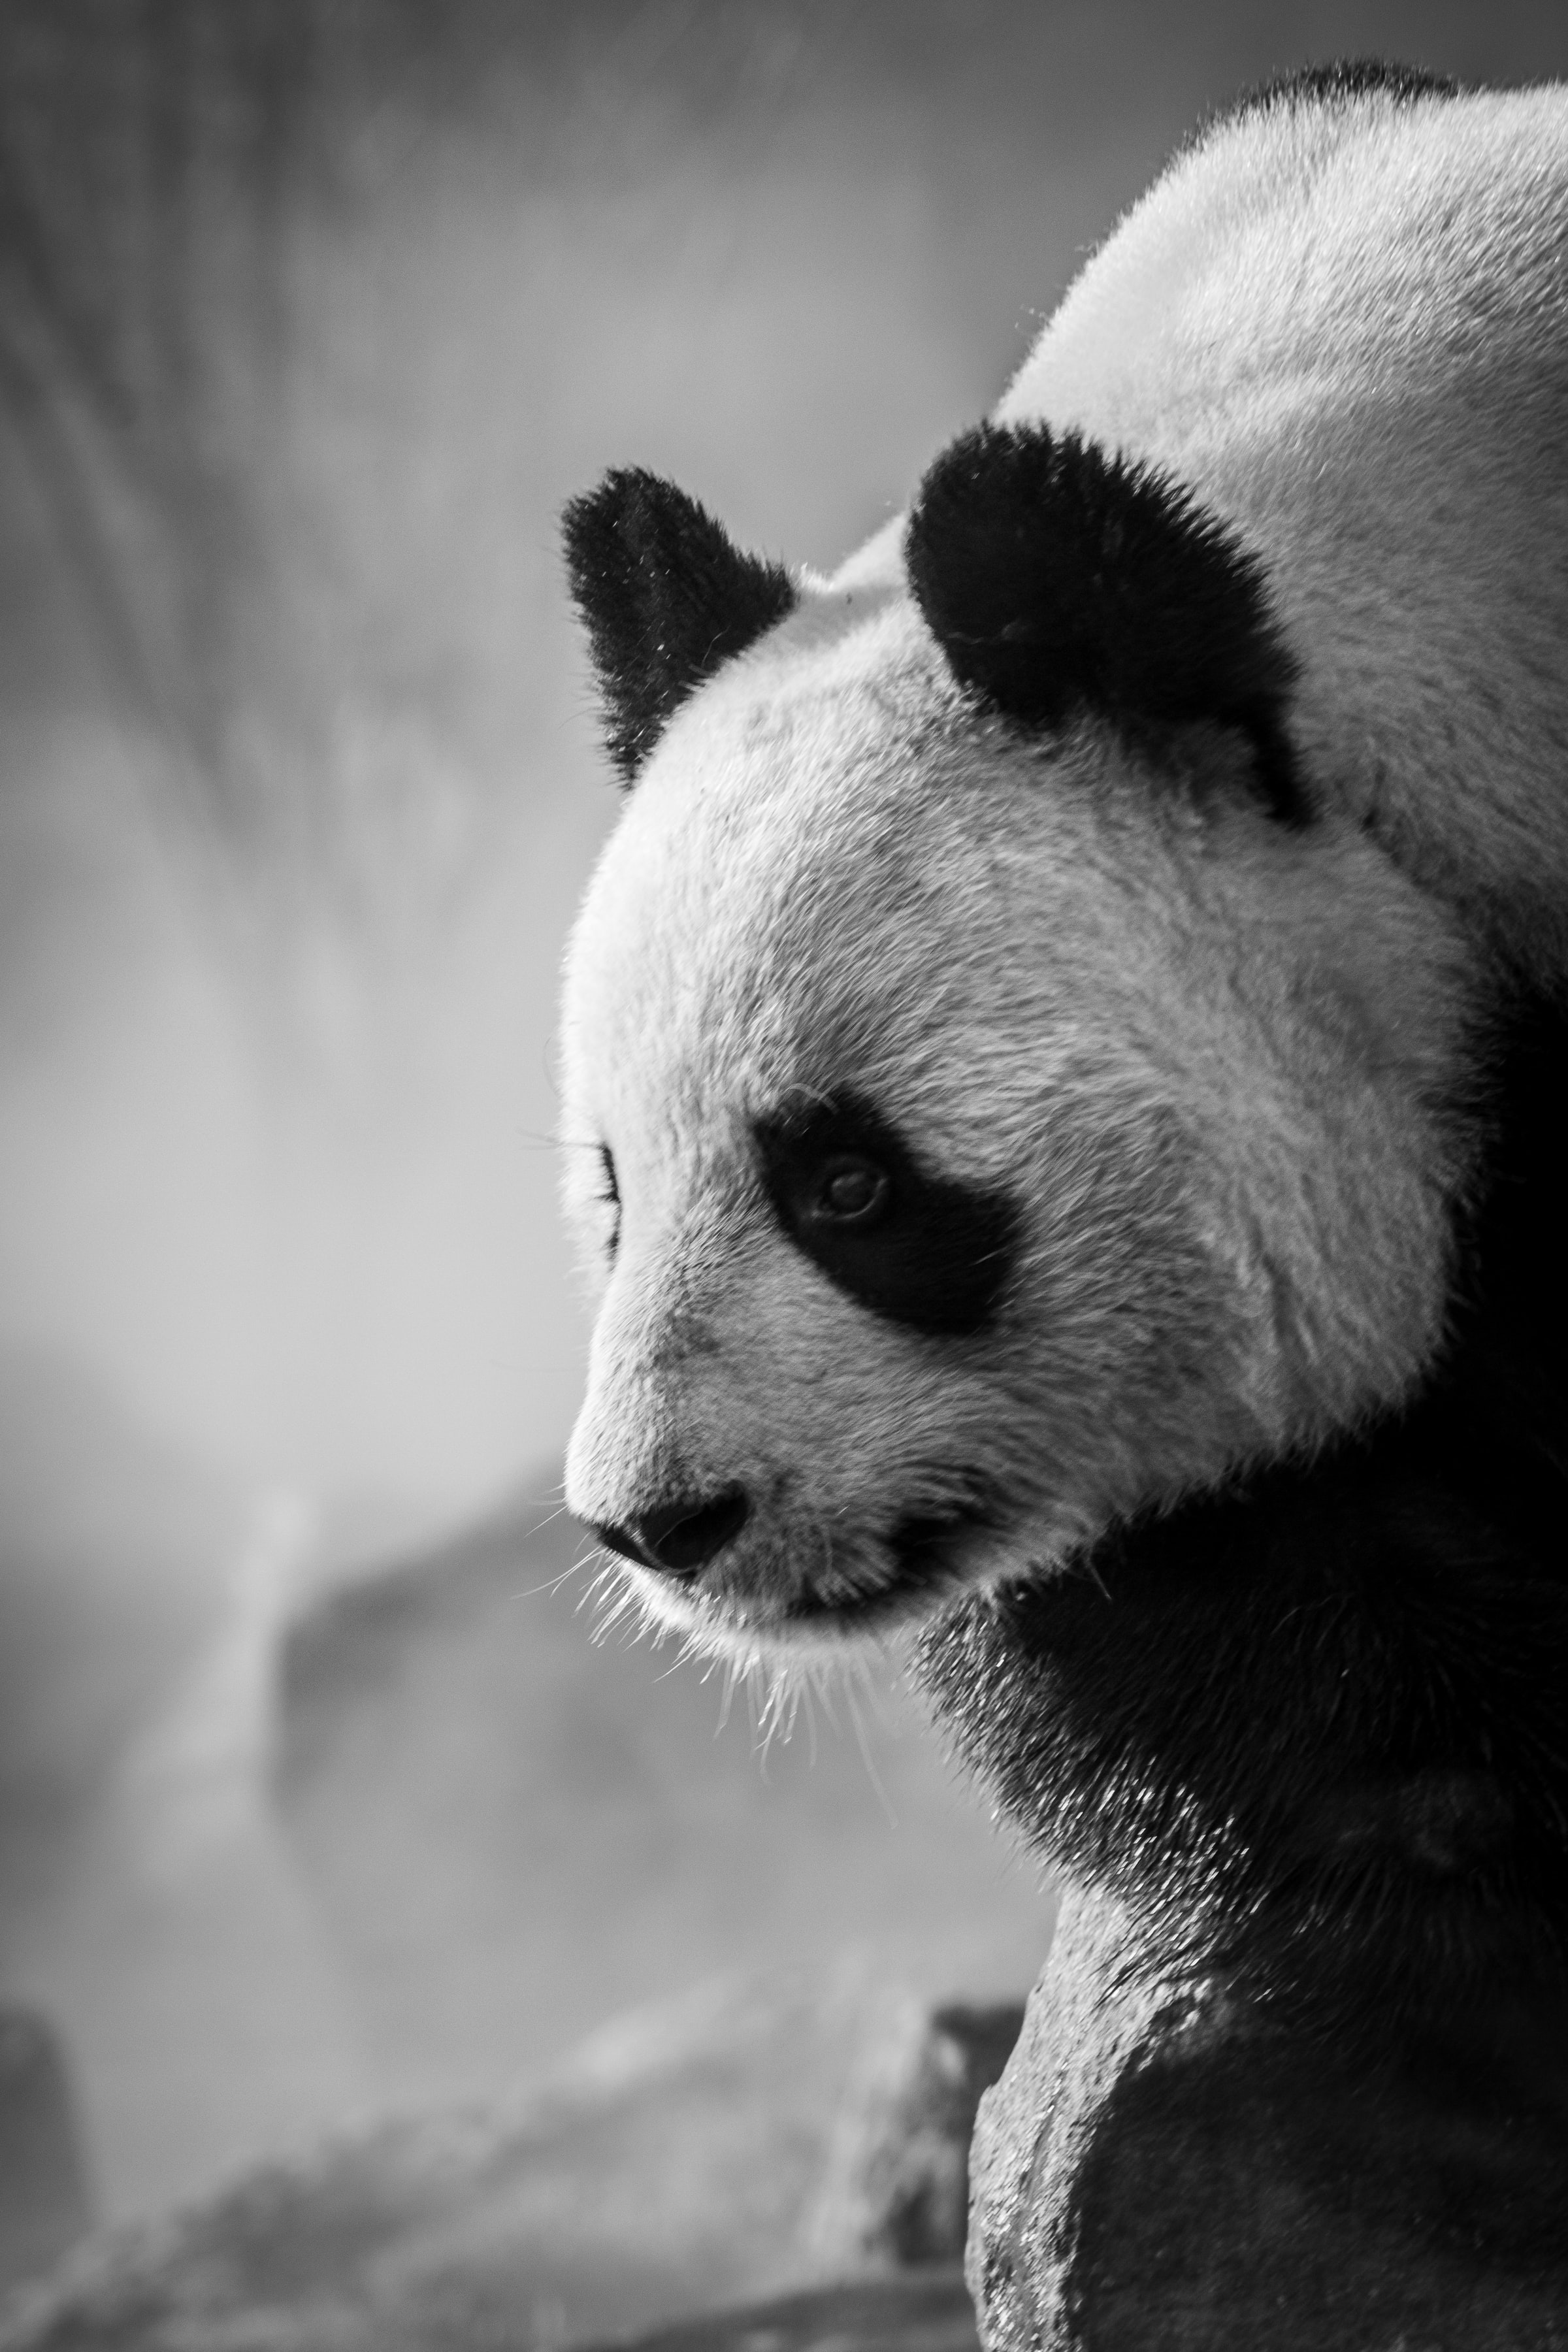 138191 download wallpaper Animals, Panda, Profile, Bw, Chb, Animal screensavers and pictures for free